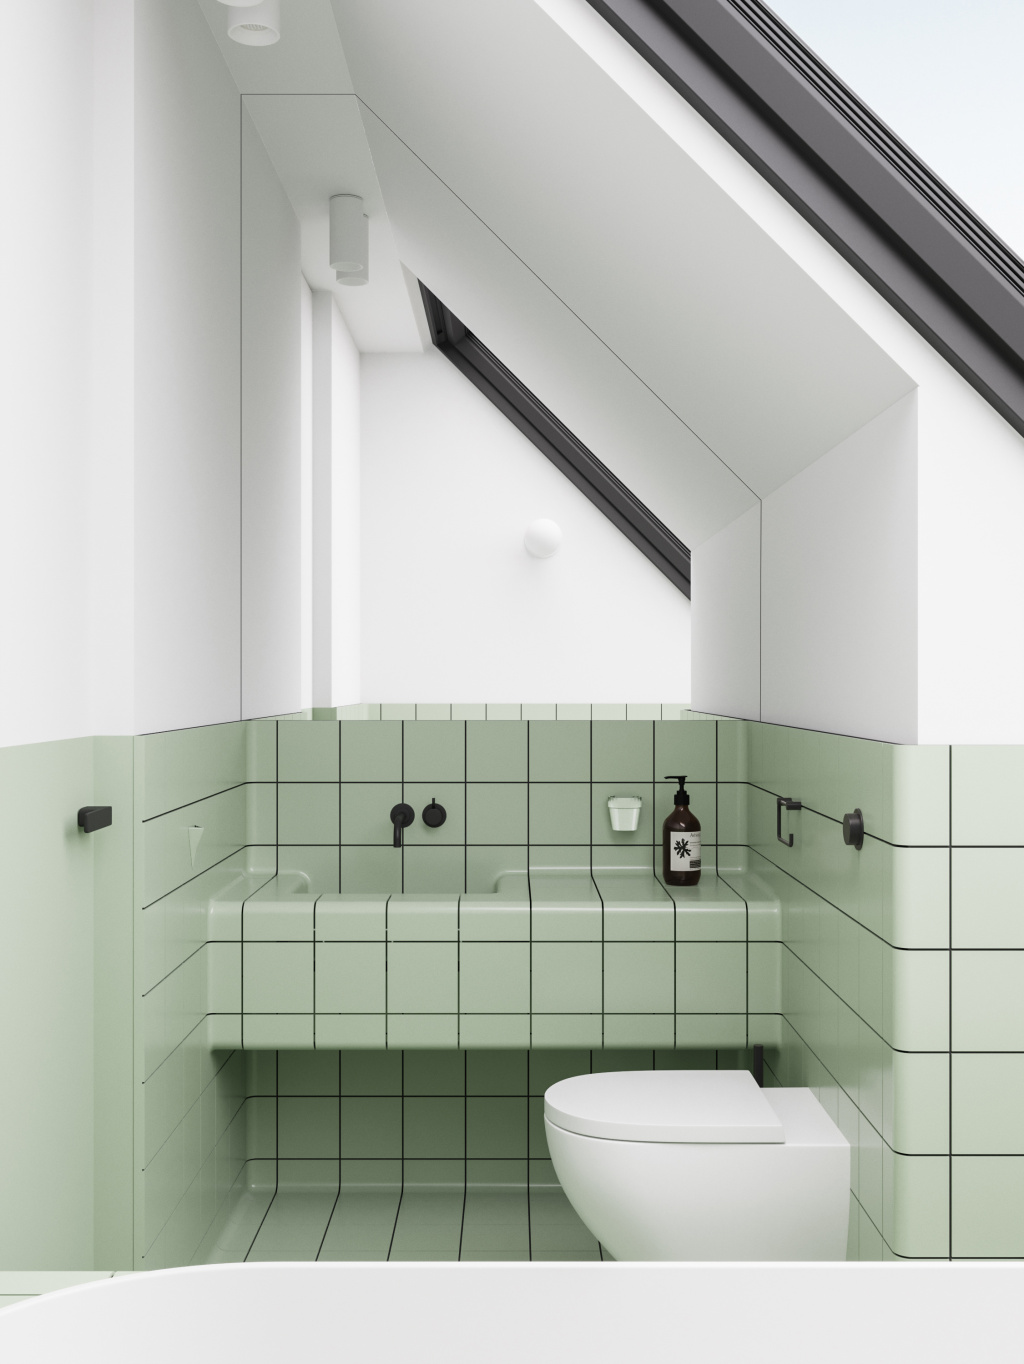 A fragment of a bathroom from an apartment project in the Norwegian city of Trondheim.  The author of the project is Emil Dervish.  Photo: emildervish.com